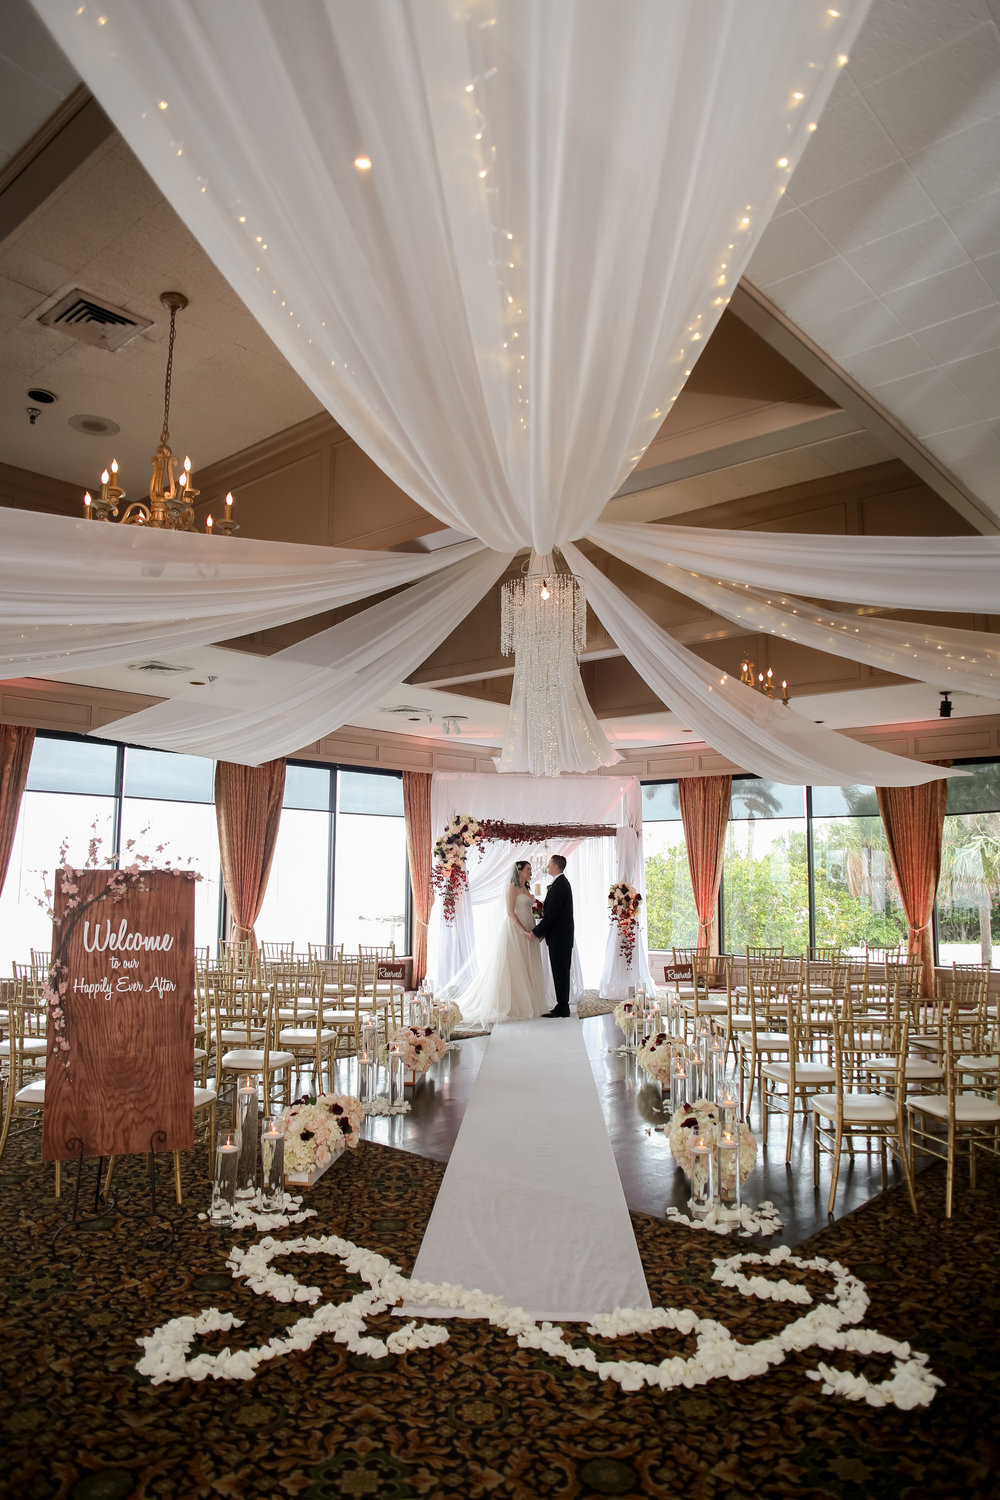 The ceremony space featured a stunning blossom branch arch with crystal chandelier and gold chiavari chairs facing floor-to-ceiling windows of the water.